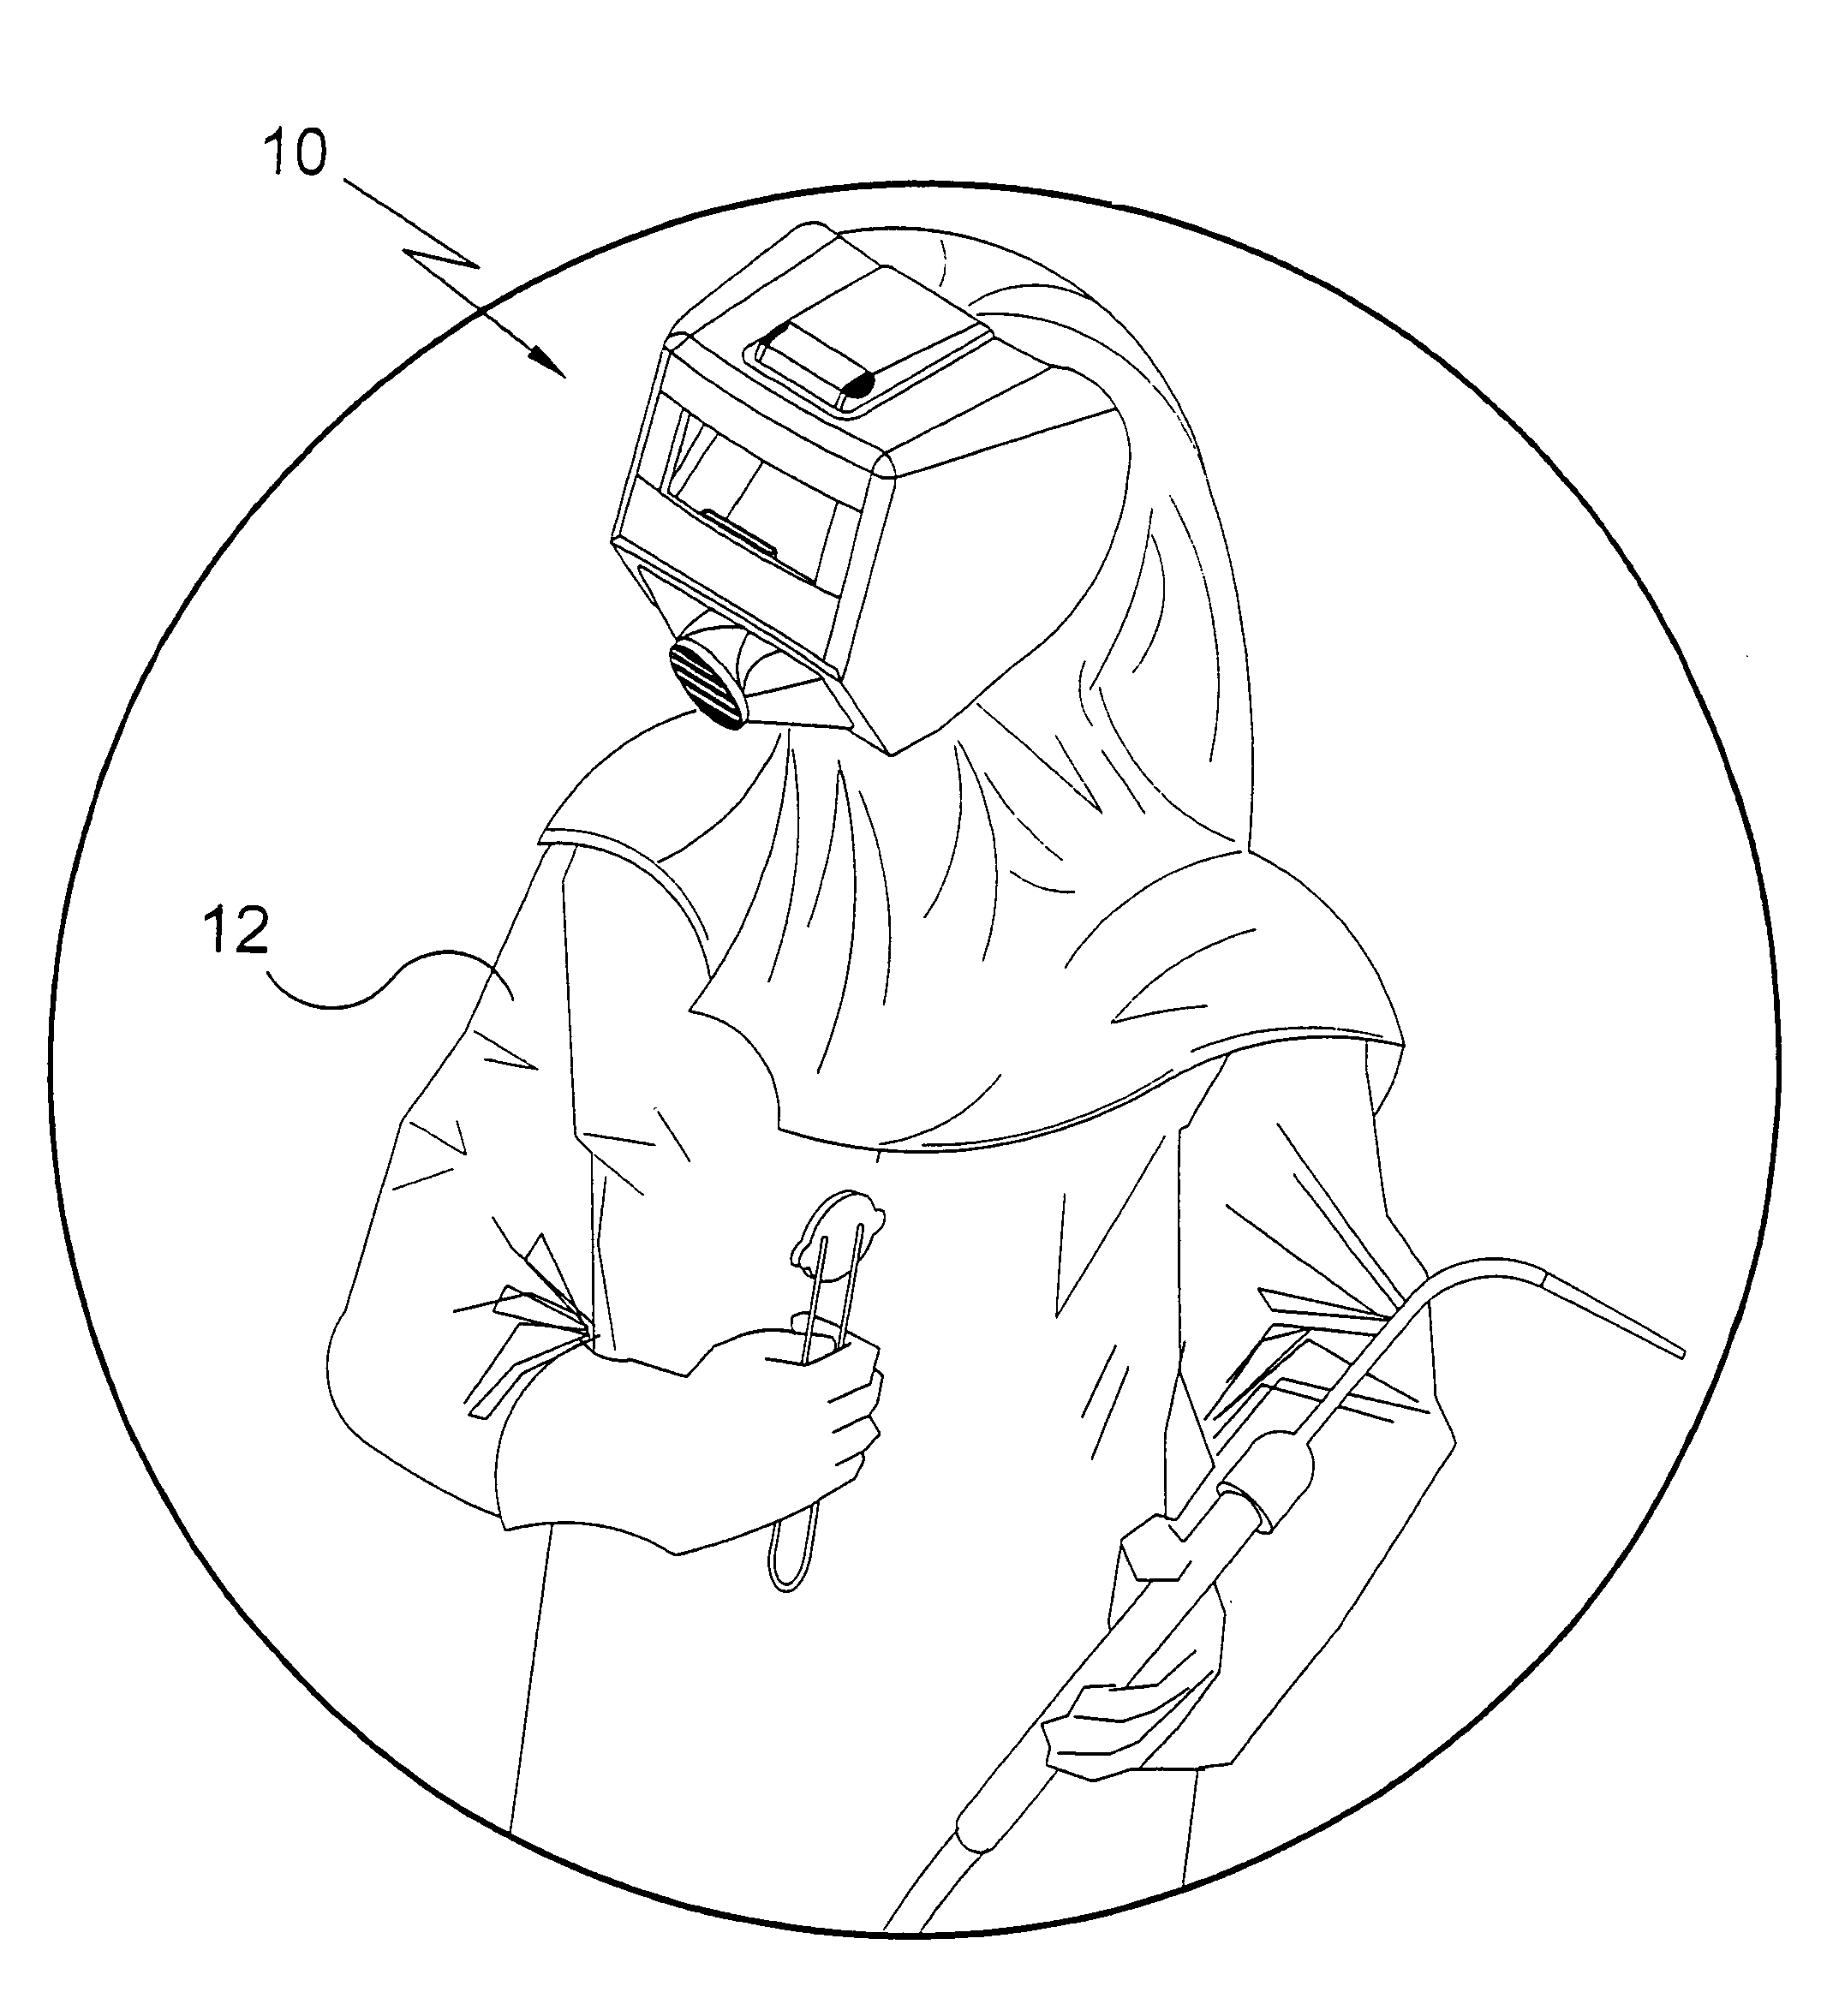 patent us7534005 welding helmet patents Shop Exhaust Fans with Shutters patent drawing